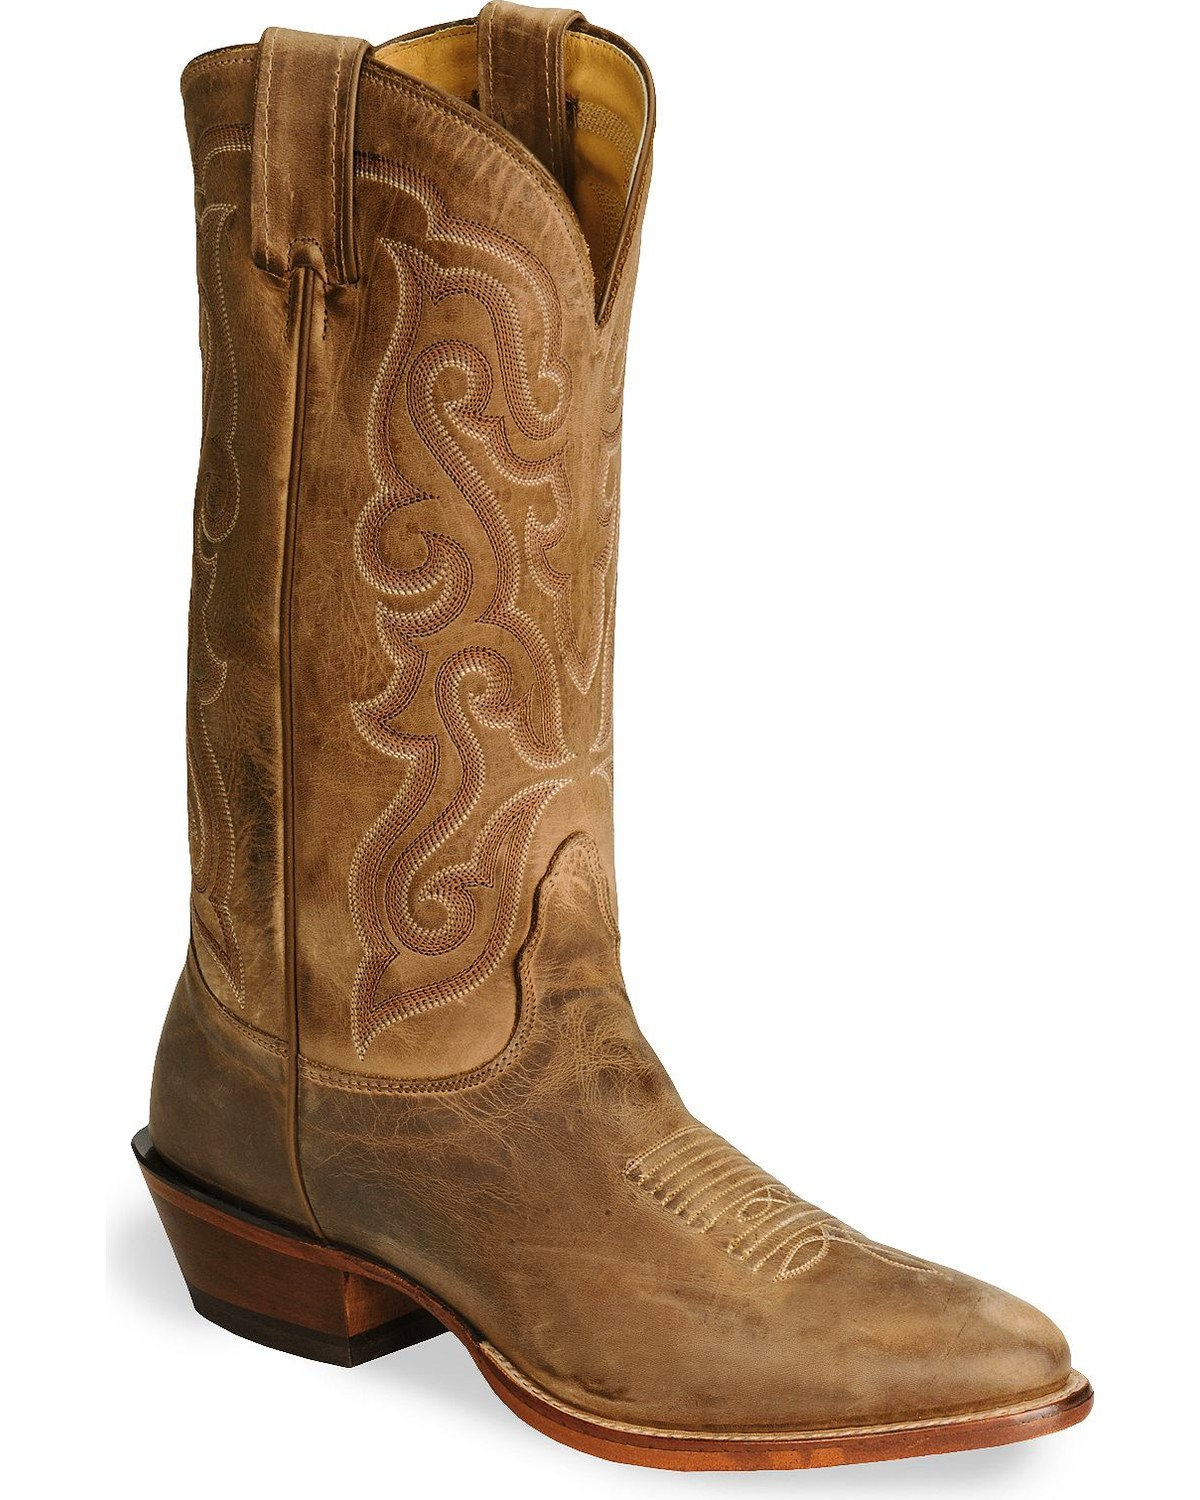 b01e4acc9e6 Nocona Men's Vintage Leather Western Boots